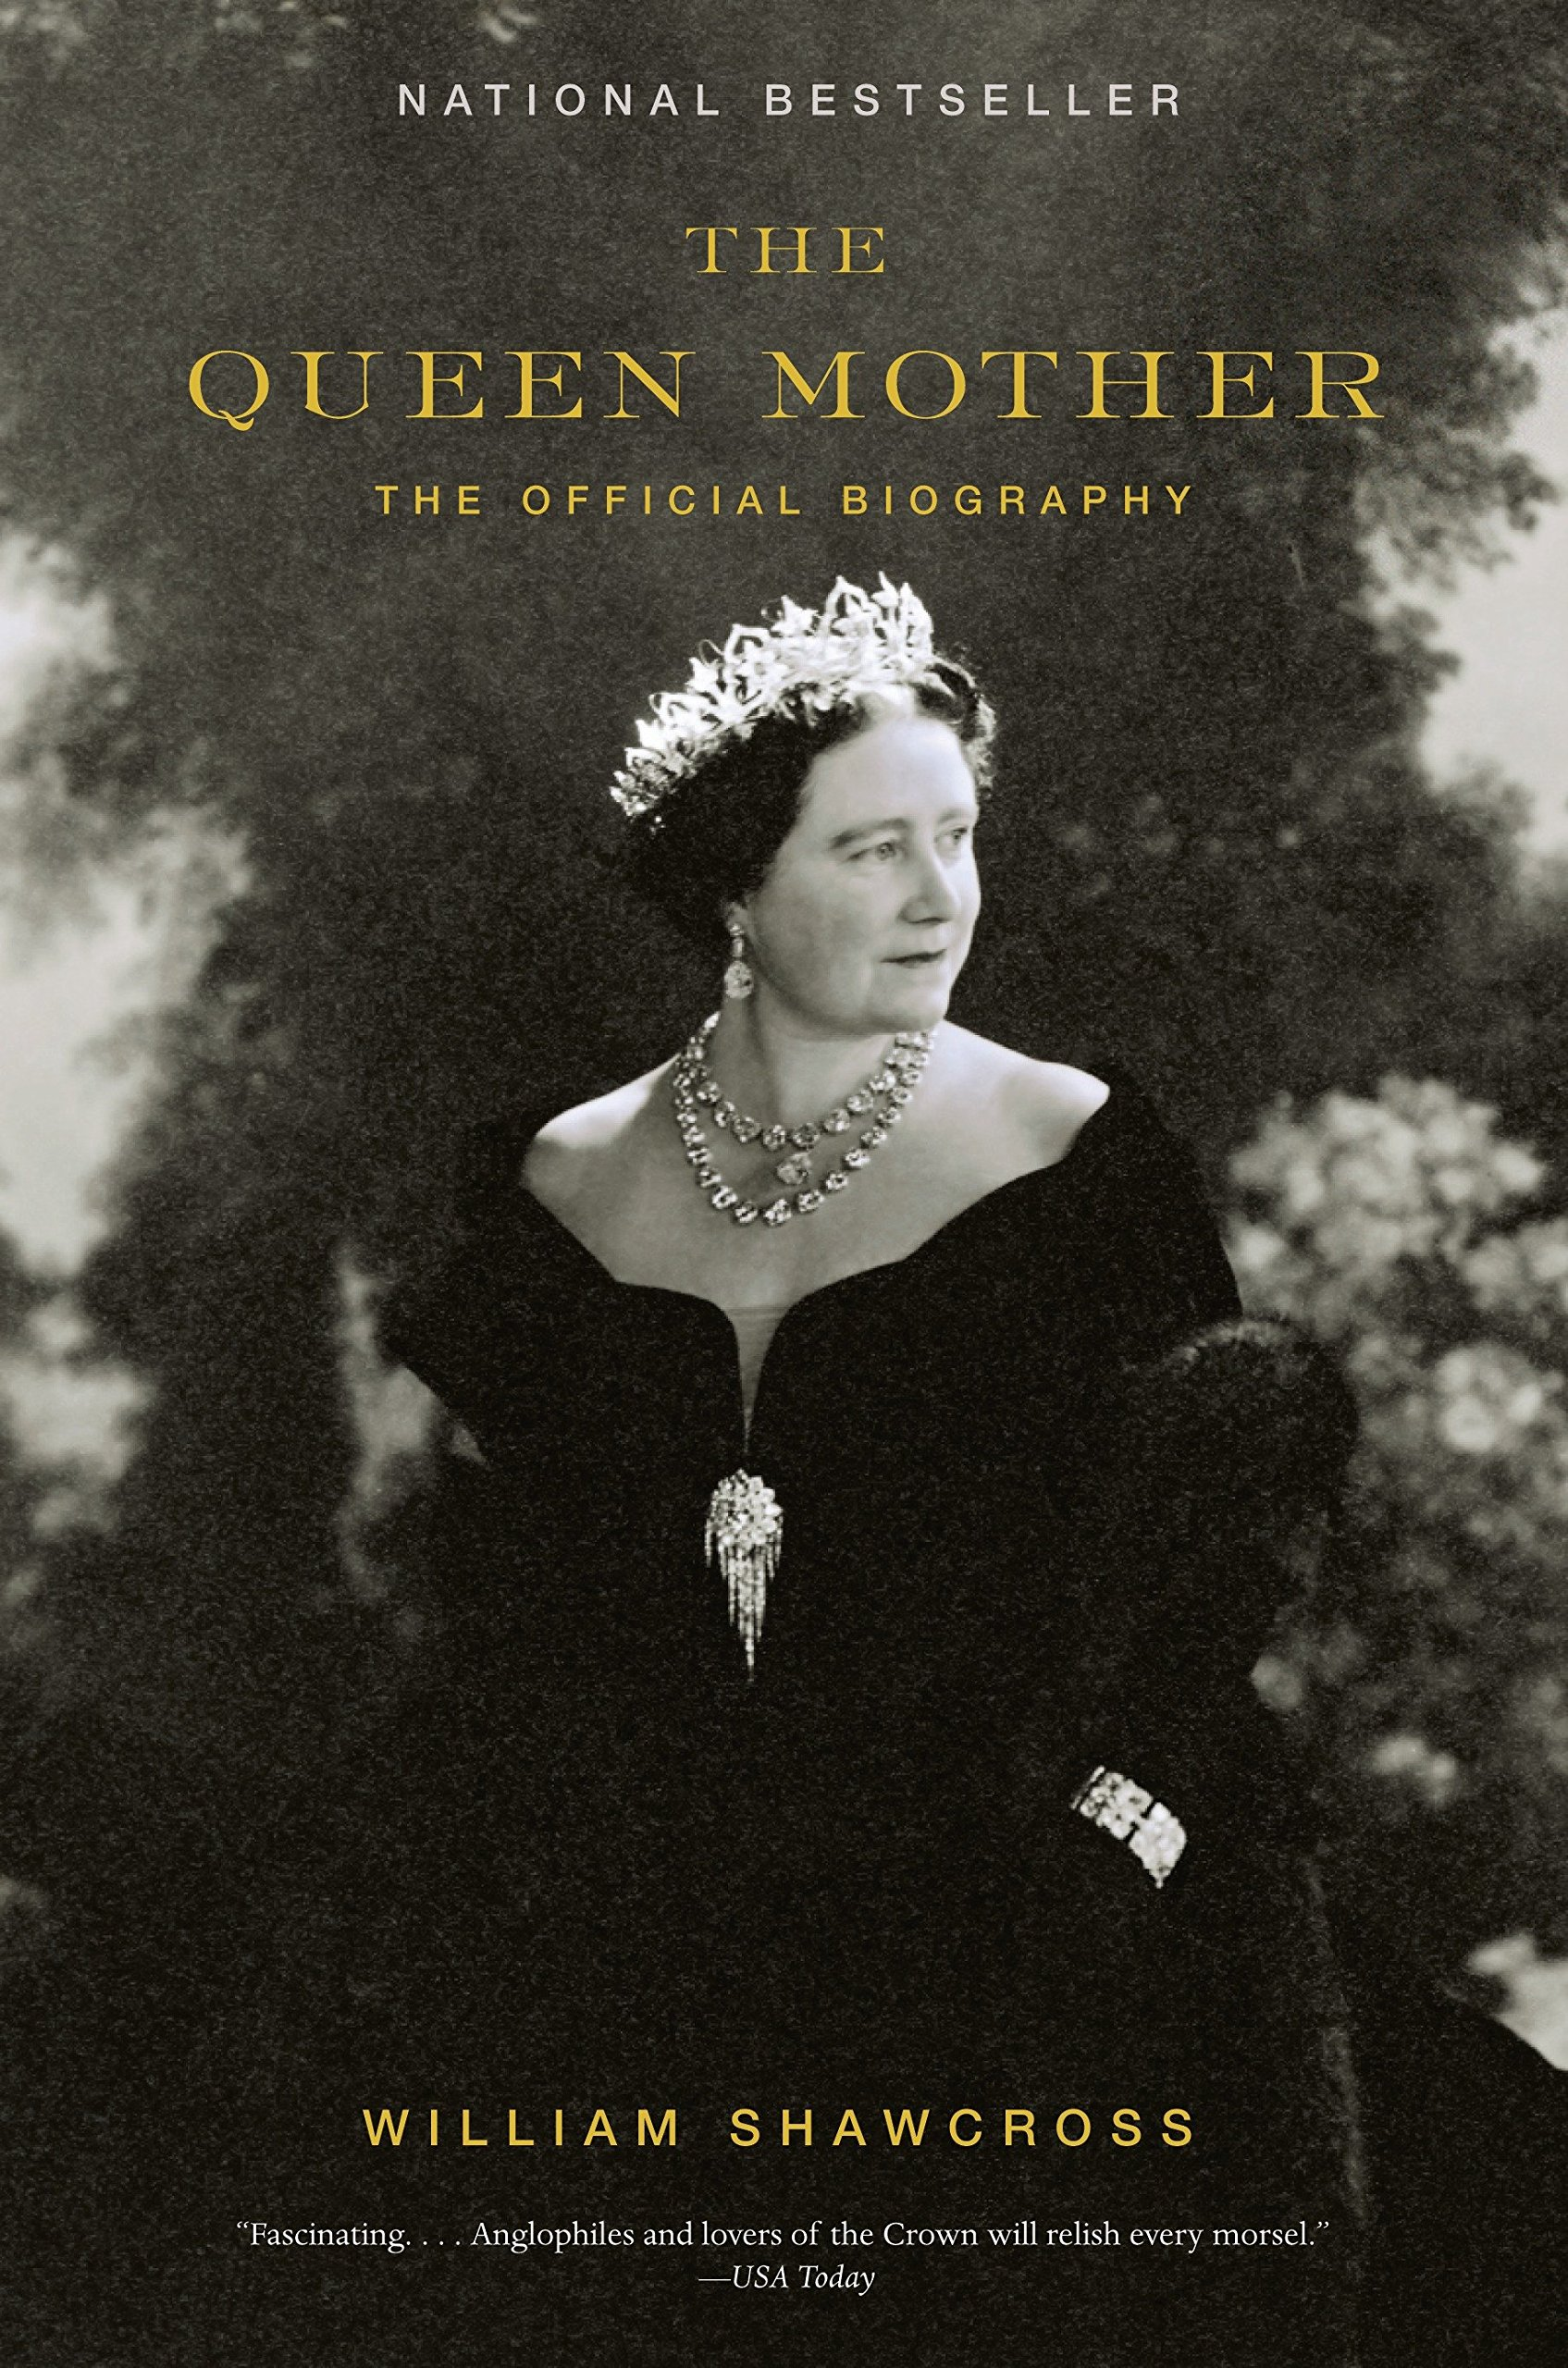 The Queen Mother: The Official Biography: Shawcross, William: 9781400078349: Amazon.com: Books